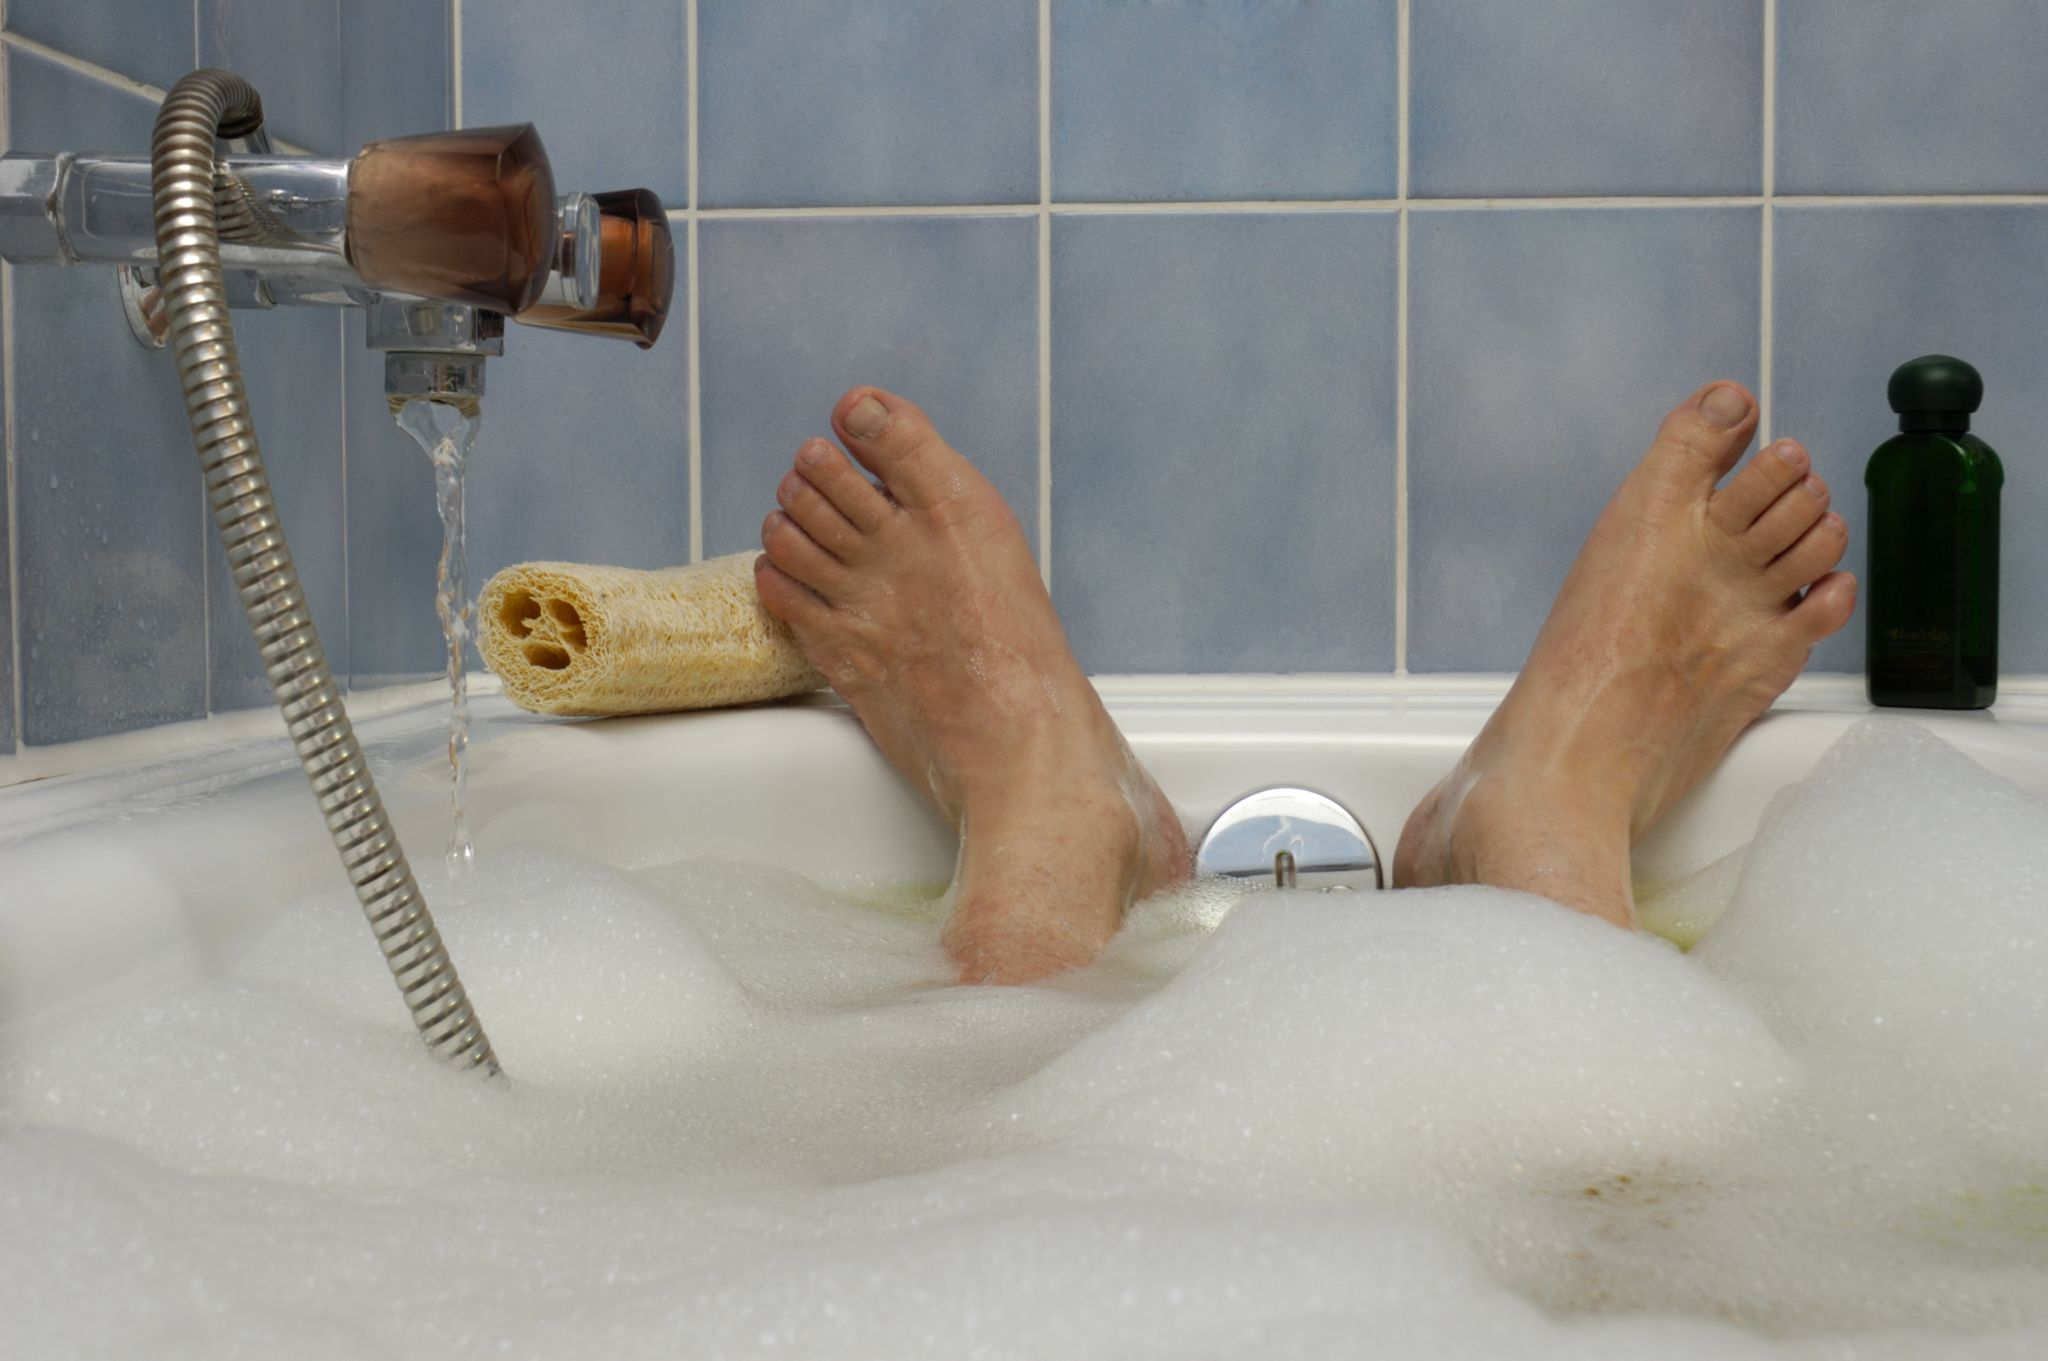 Feet sticking up at the end of the bath